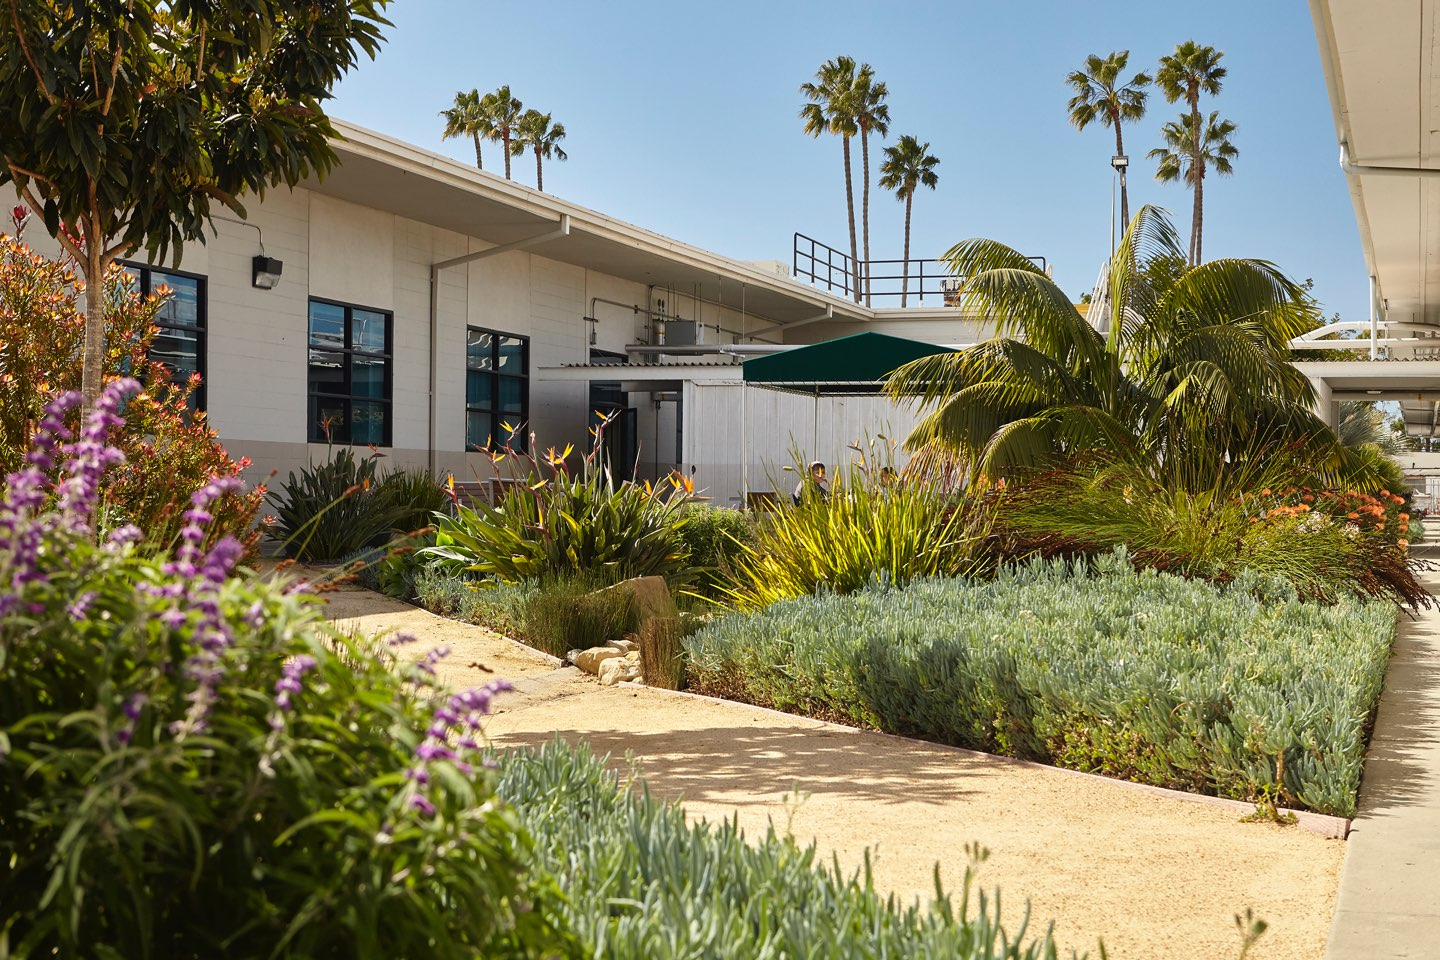 Photo of drought-tolerant landscaping